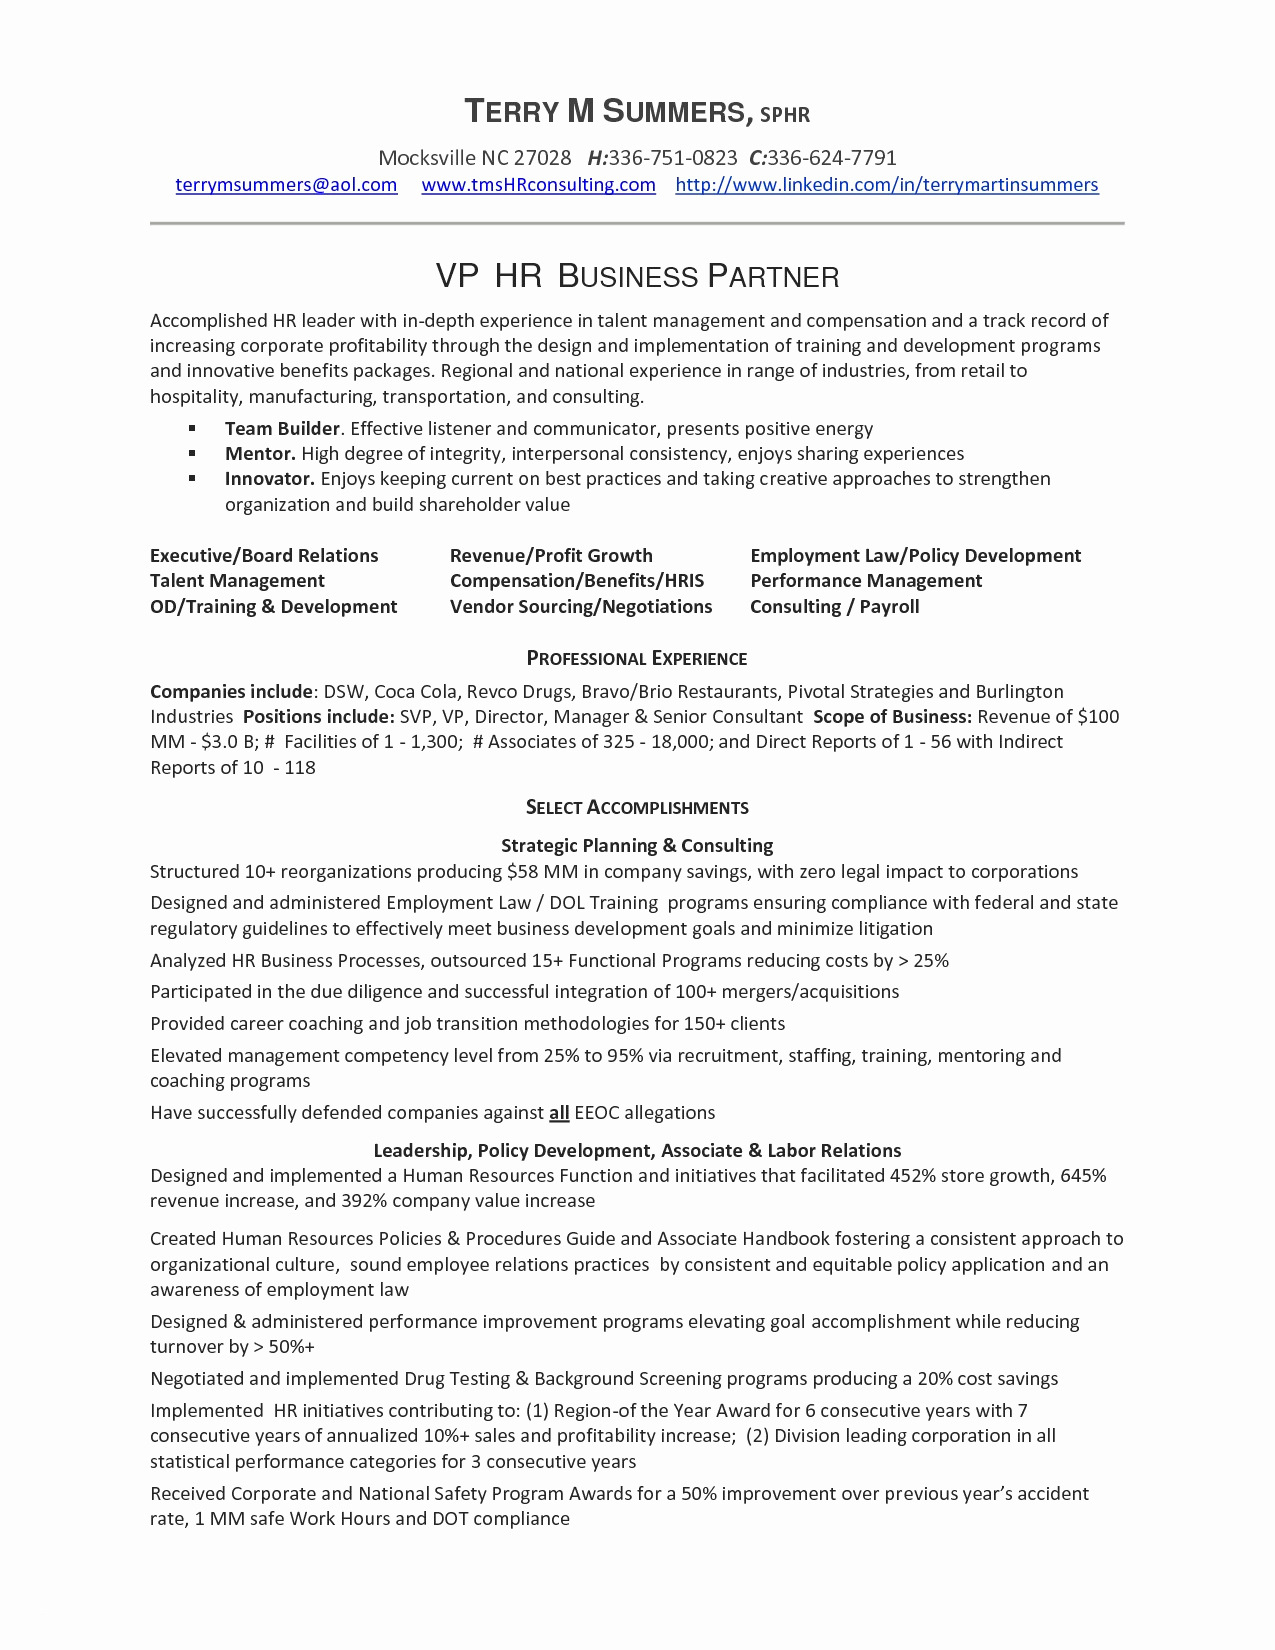 Business Development Cover Letter Template - Business Analyst Skills Resume Beautiful Business Analyst Resume